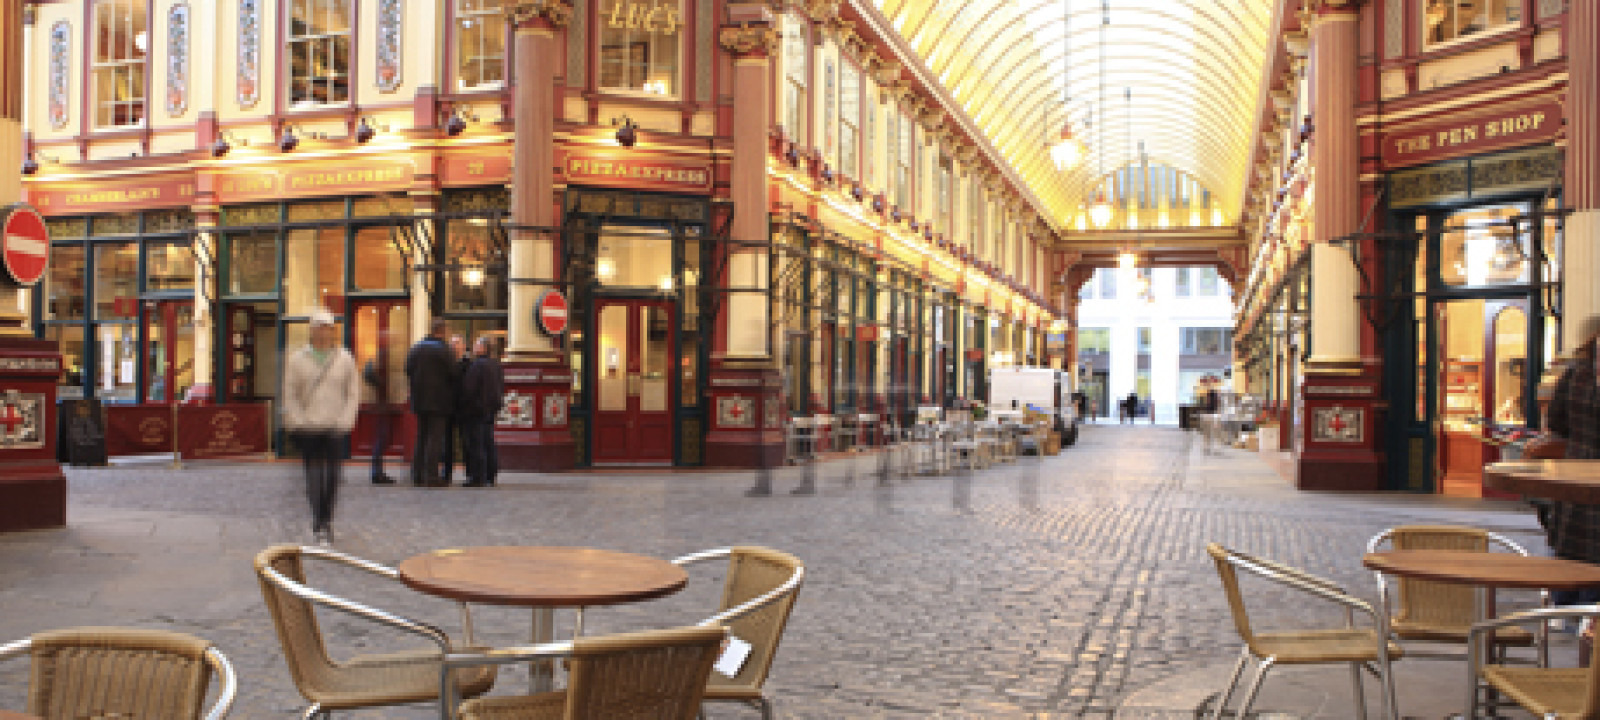 Leadenhall Market, City of London, London, England, United Kingd